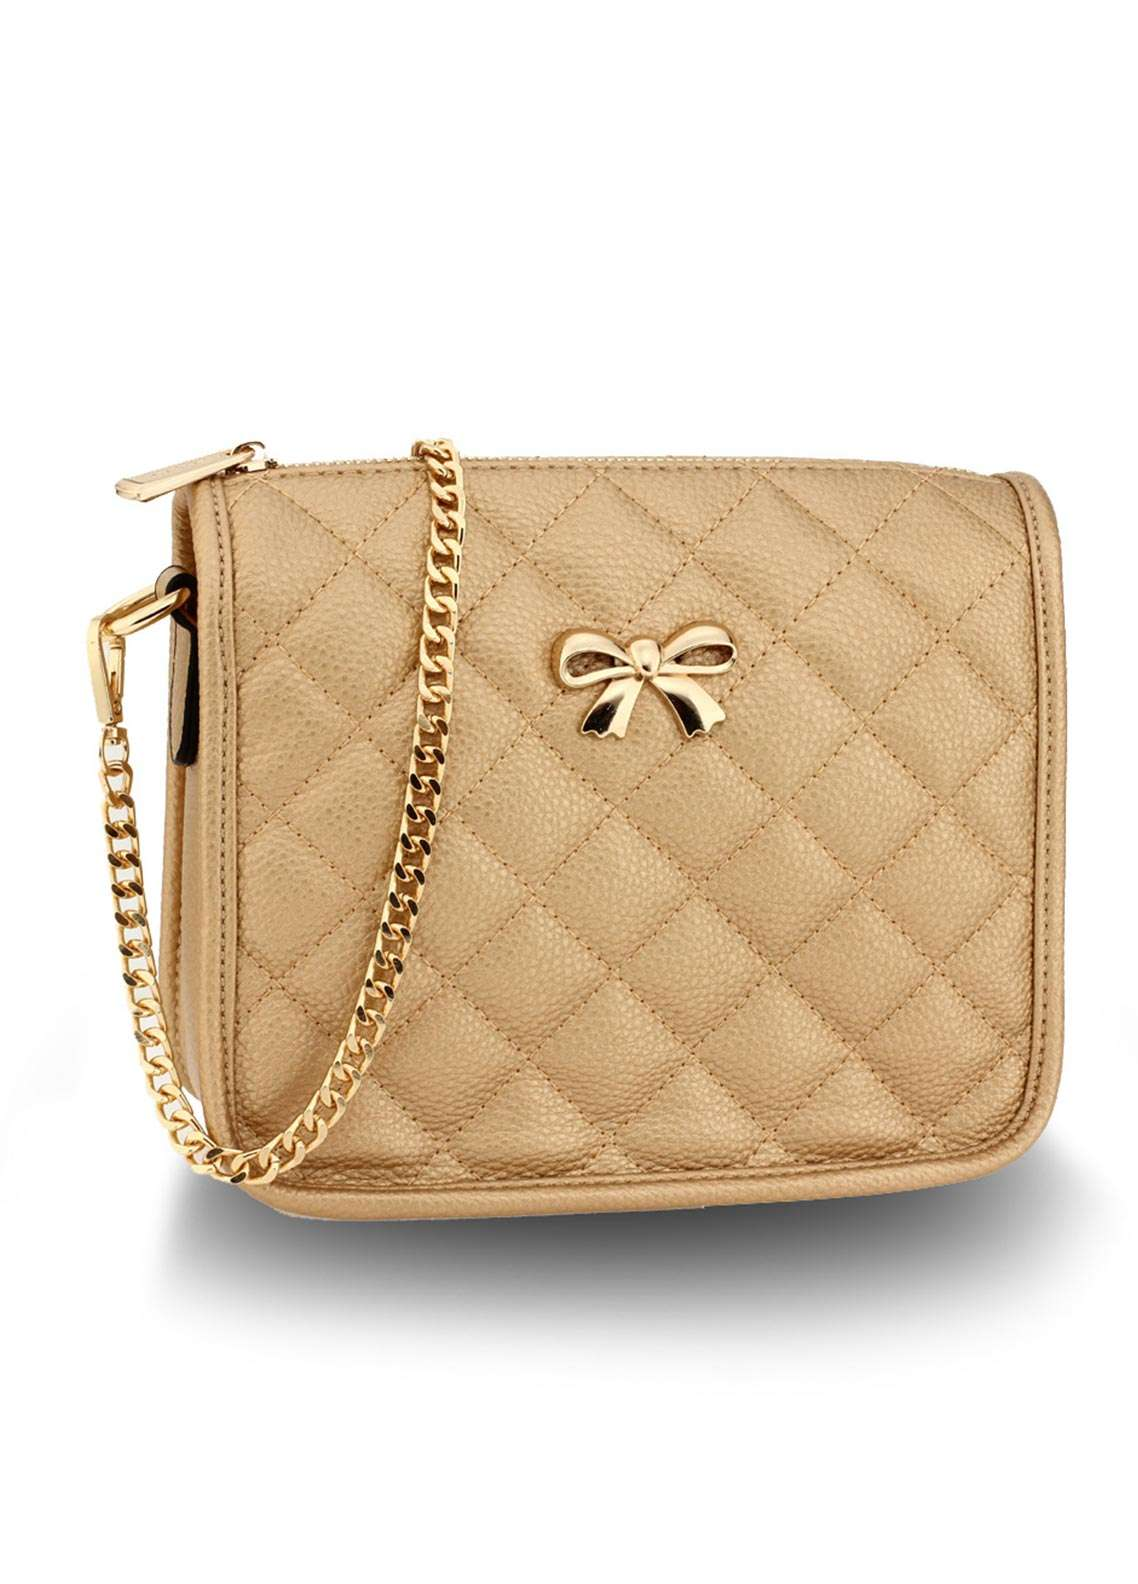 Anna Grace London Faux Leather Crossbody  Bags  for Women  Gold with Quilted Texture